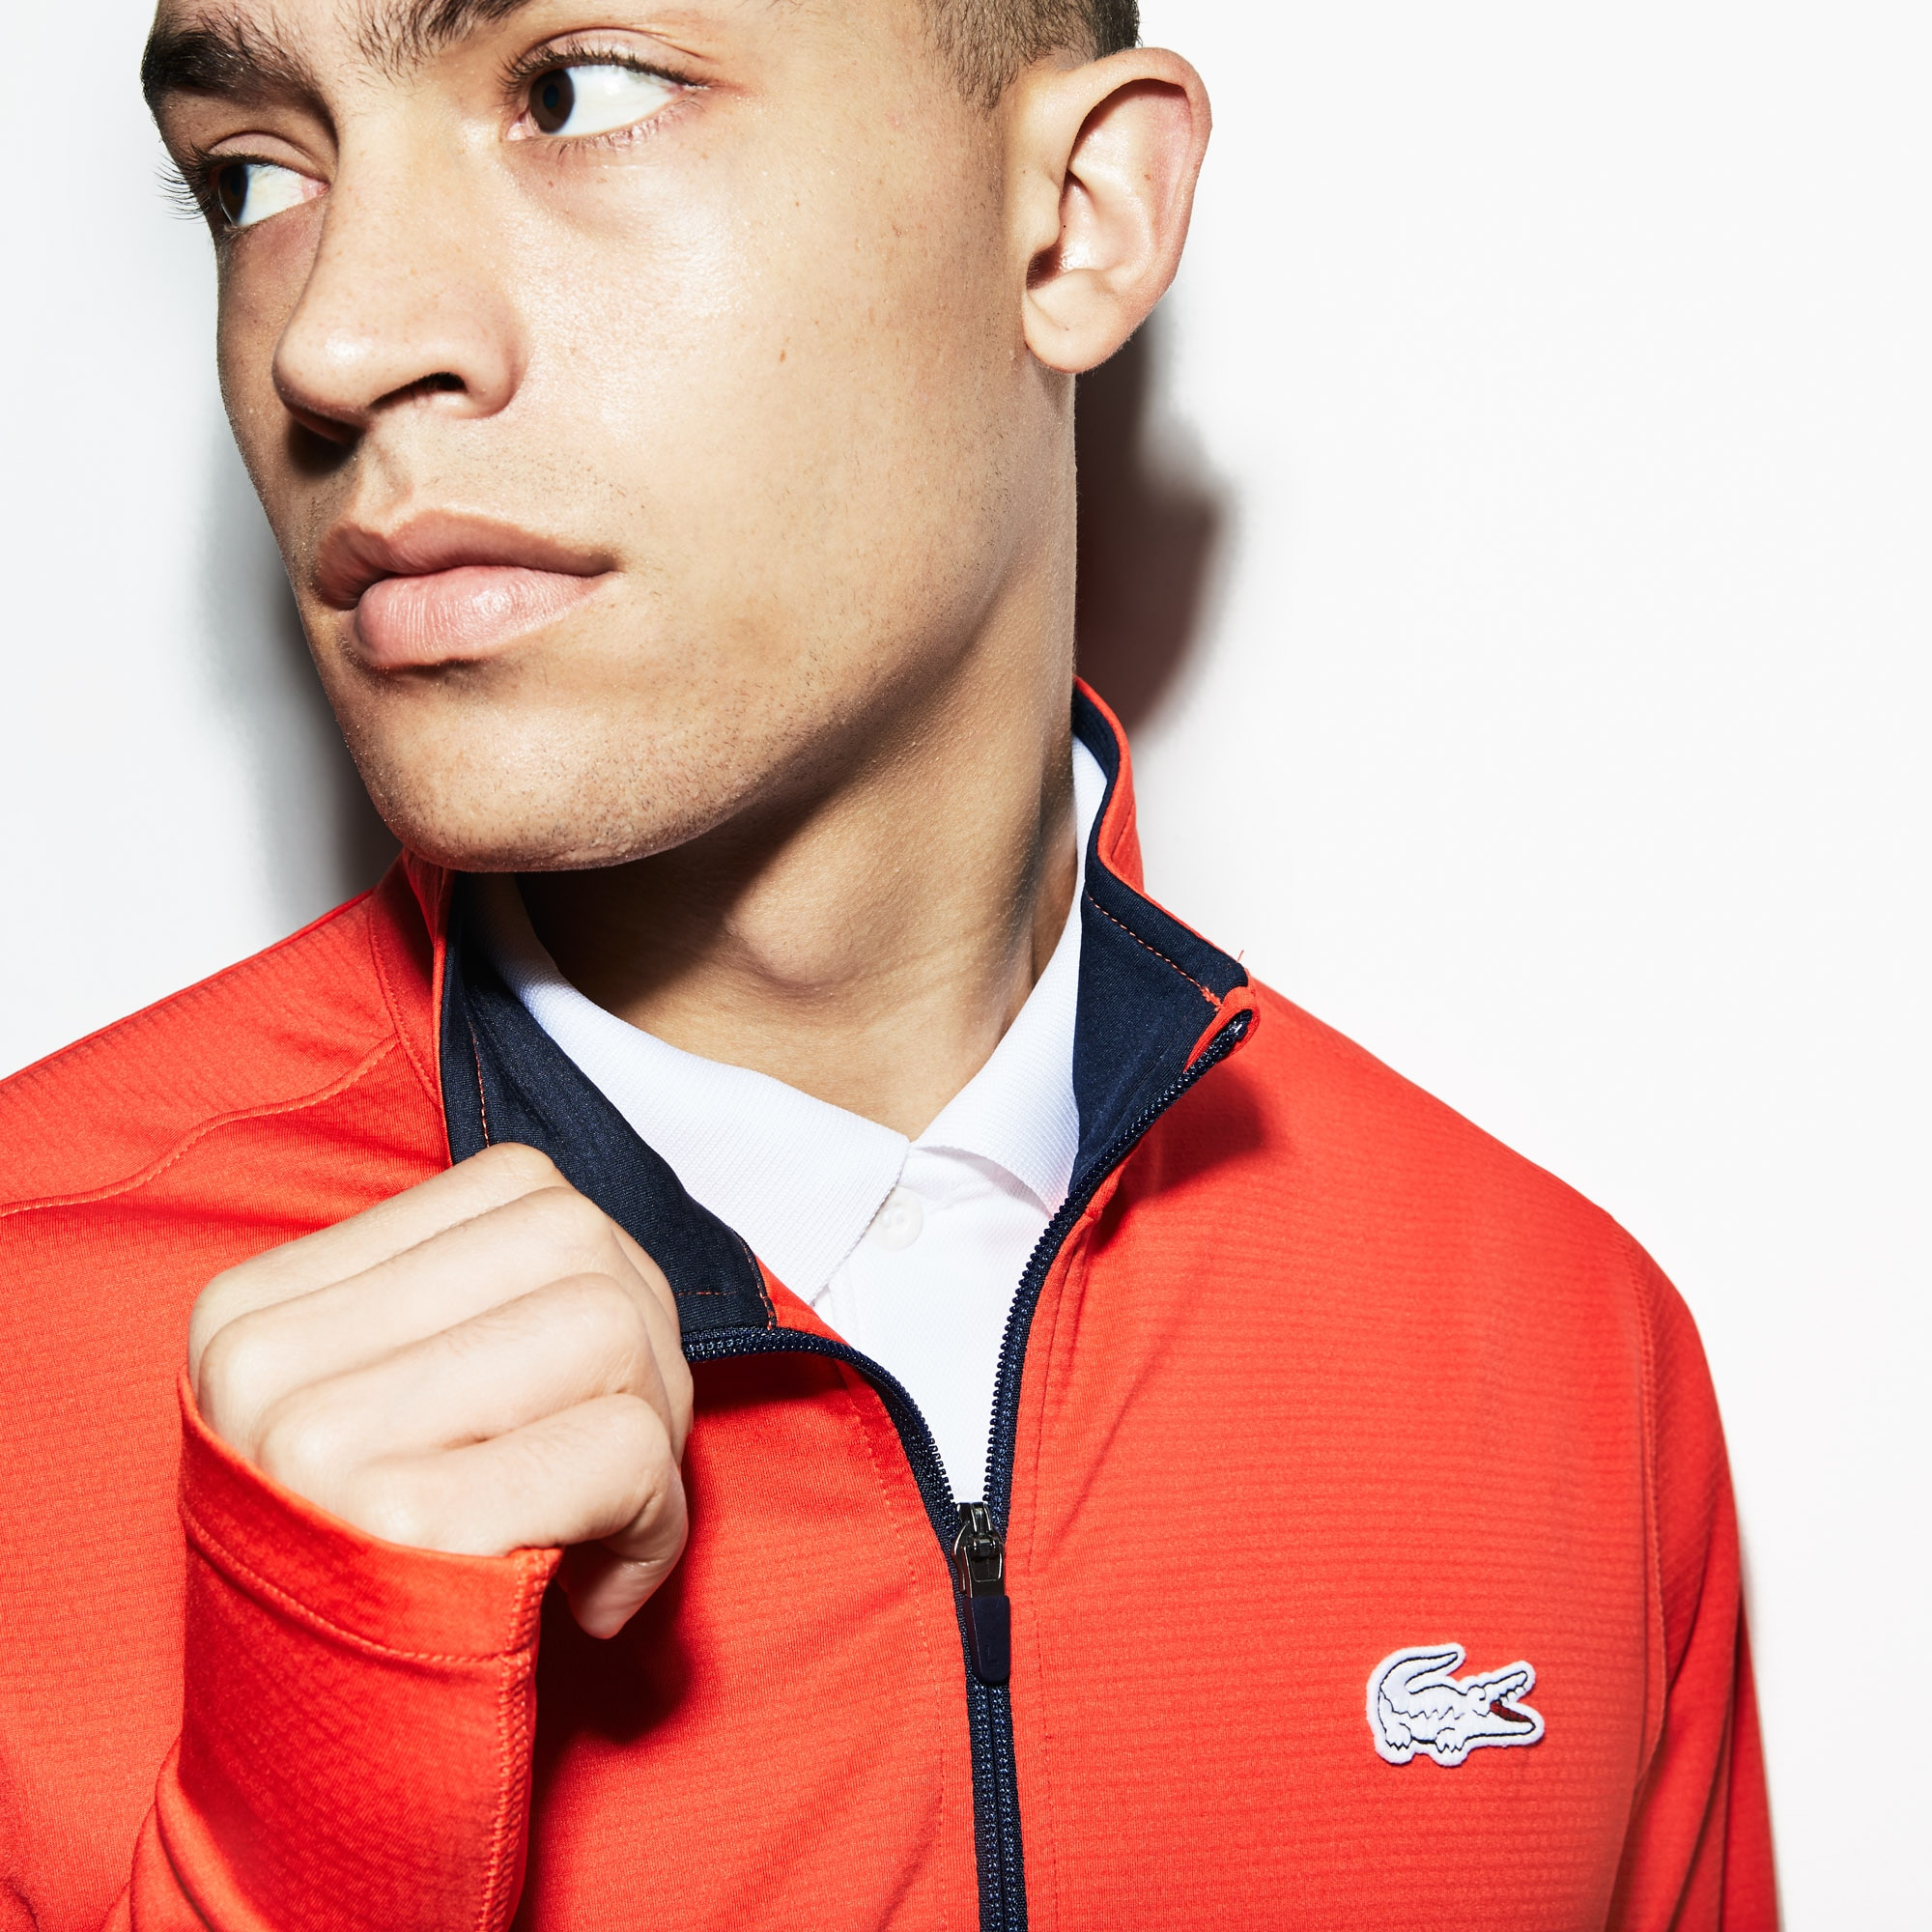 Men's Lacoste SPORT French Open Edition Stretch Tech Zip Jacket